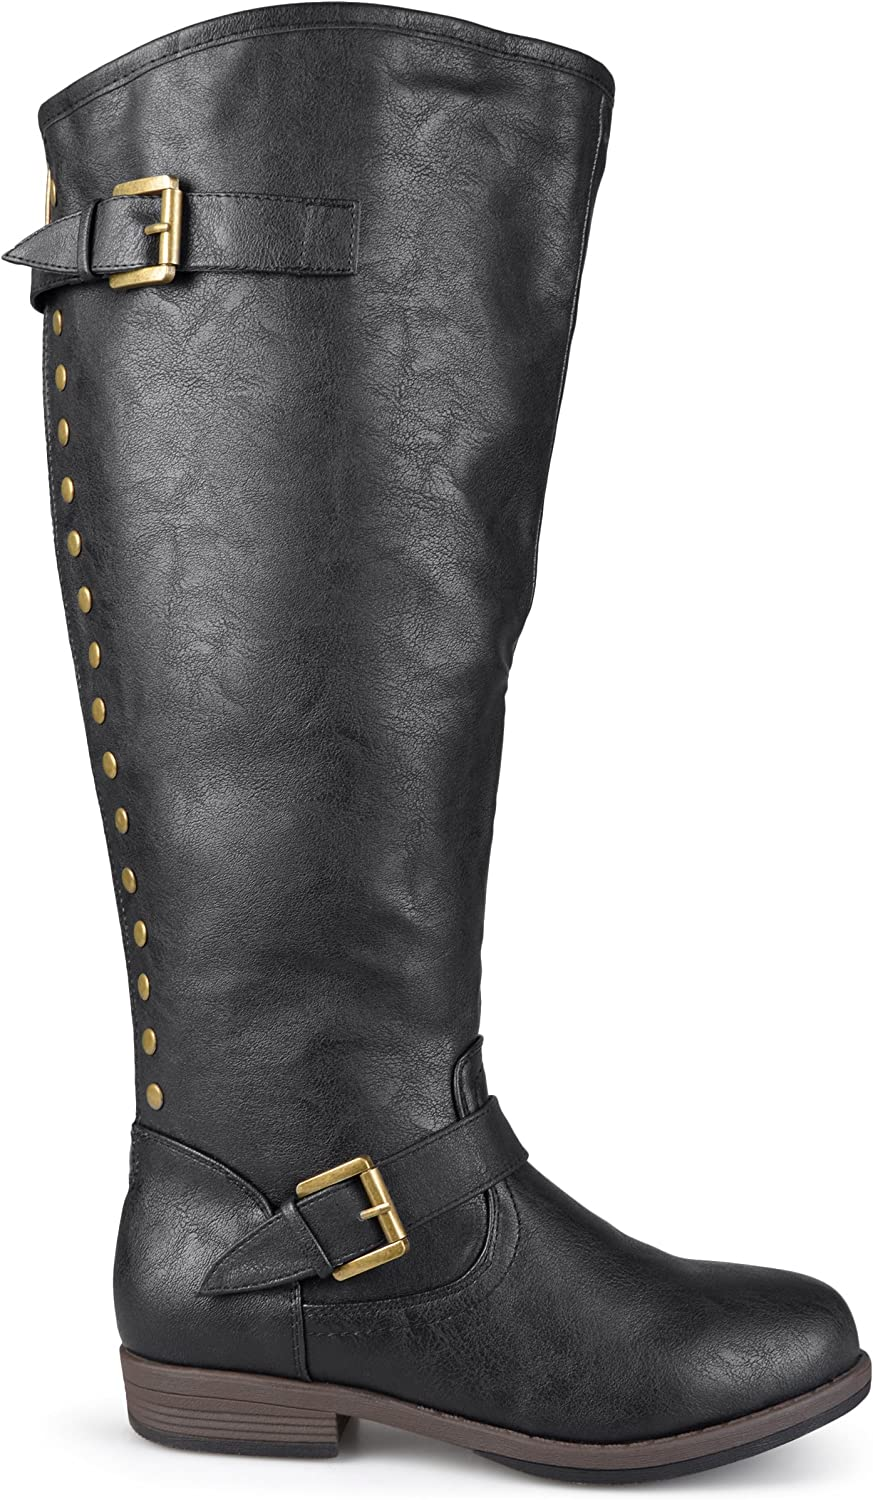 Brinley Co Womens Durango-xwc Riding Boot